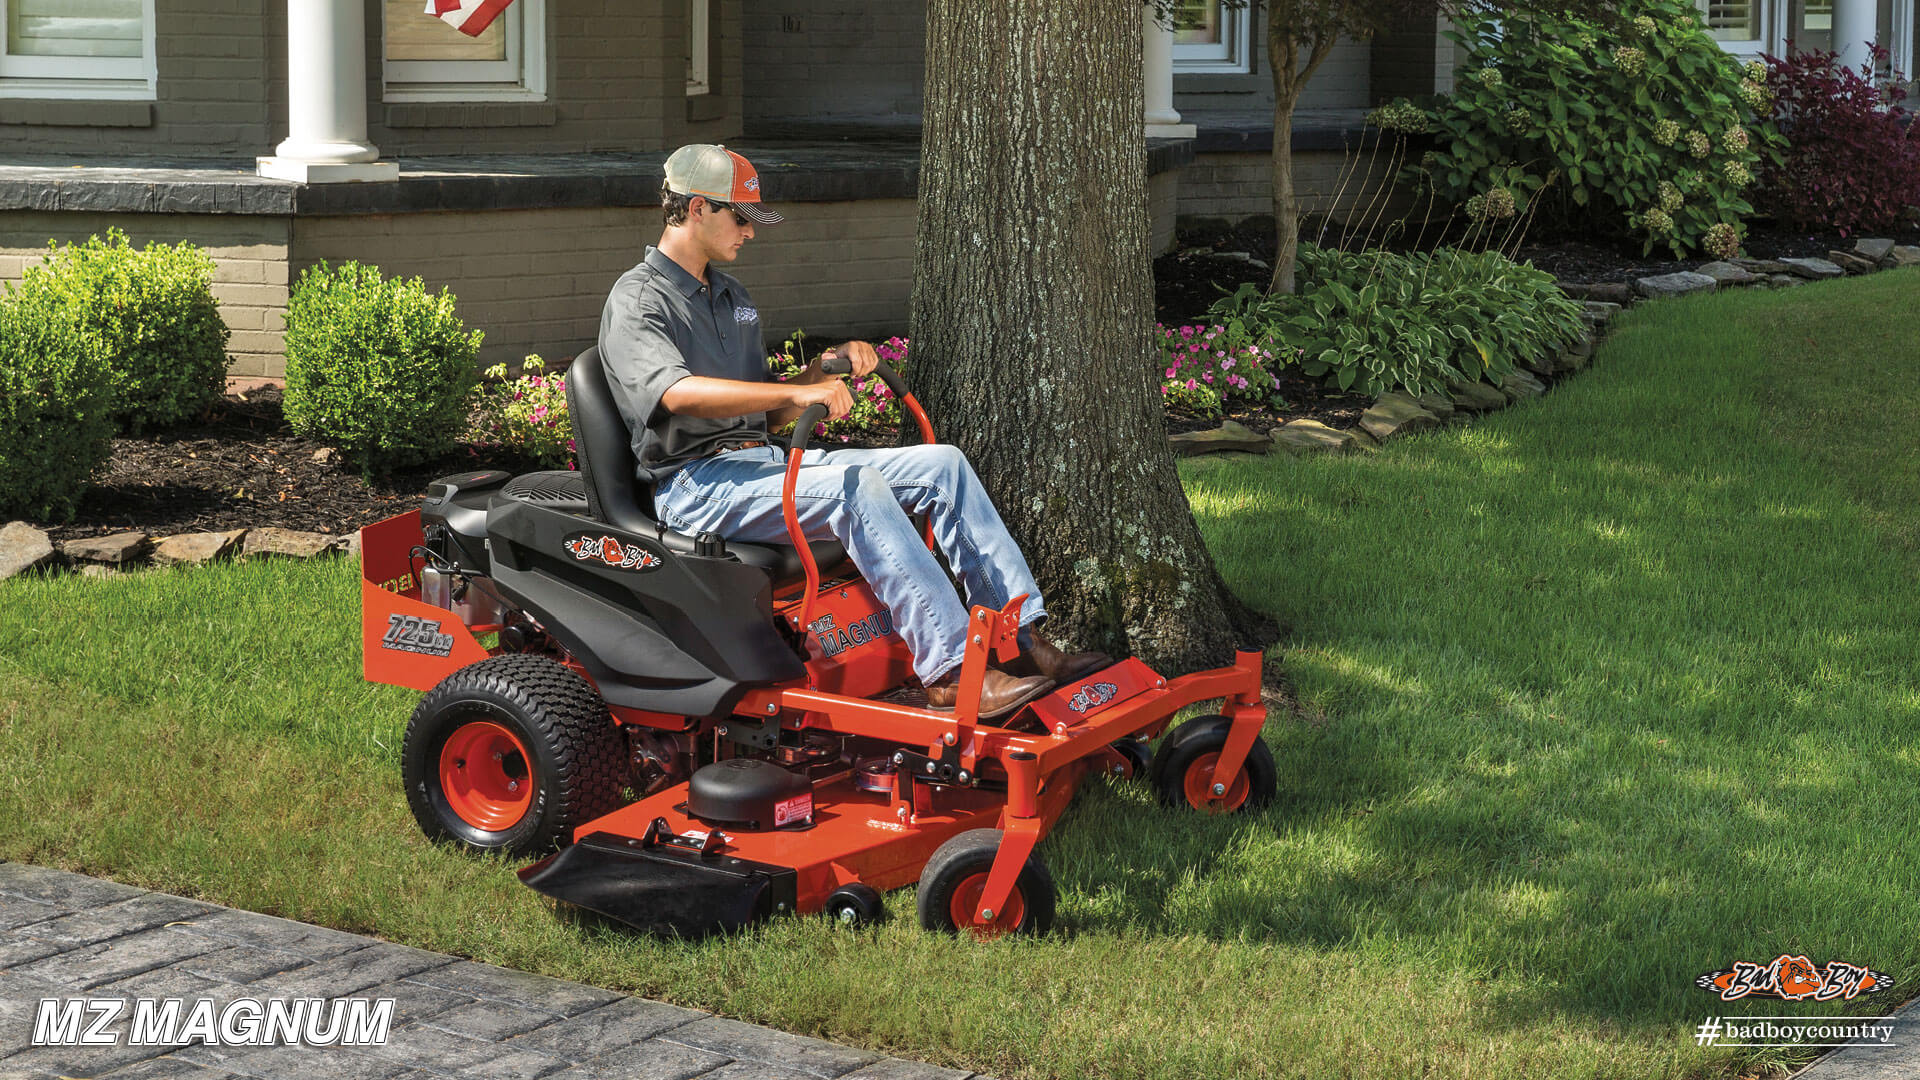 2017 Bad Boy Mowers 5400 (Kawasaki) MZ Magnum in Terre Haute, Indiana